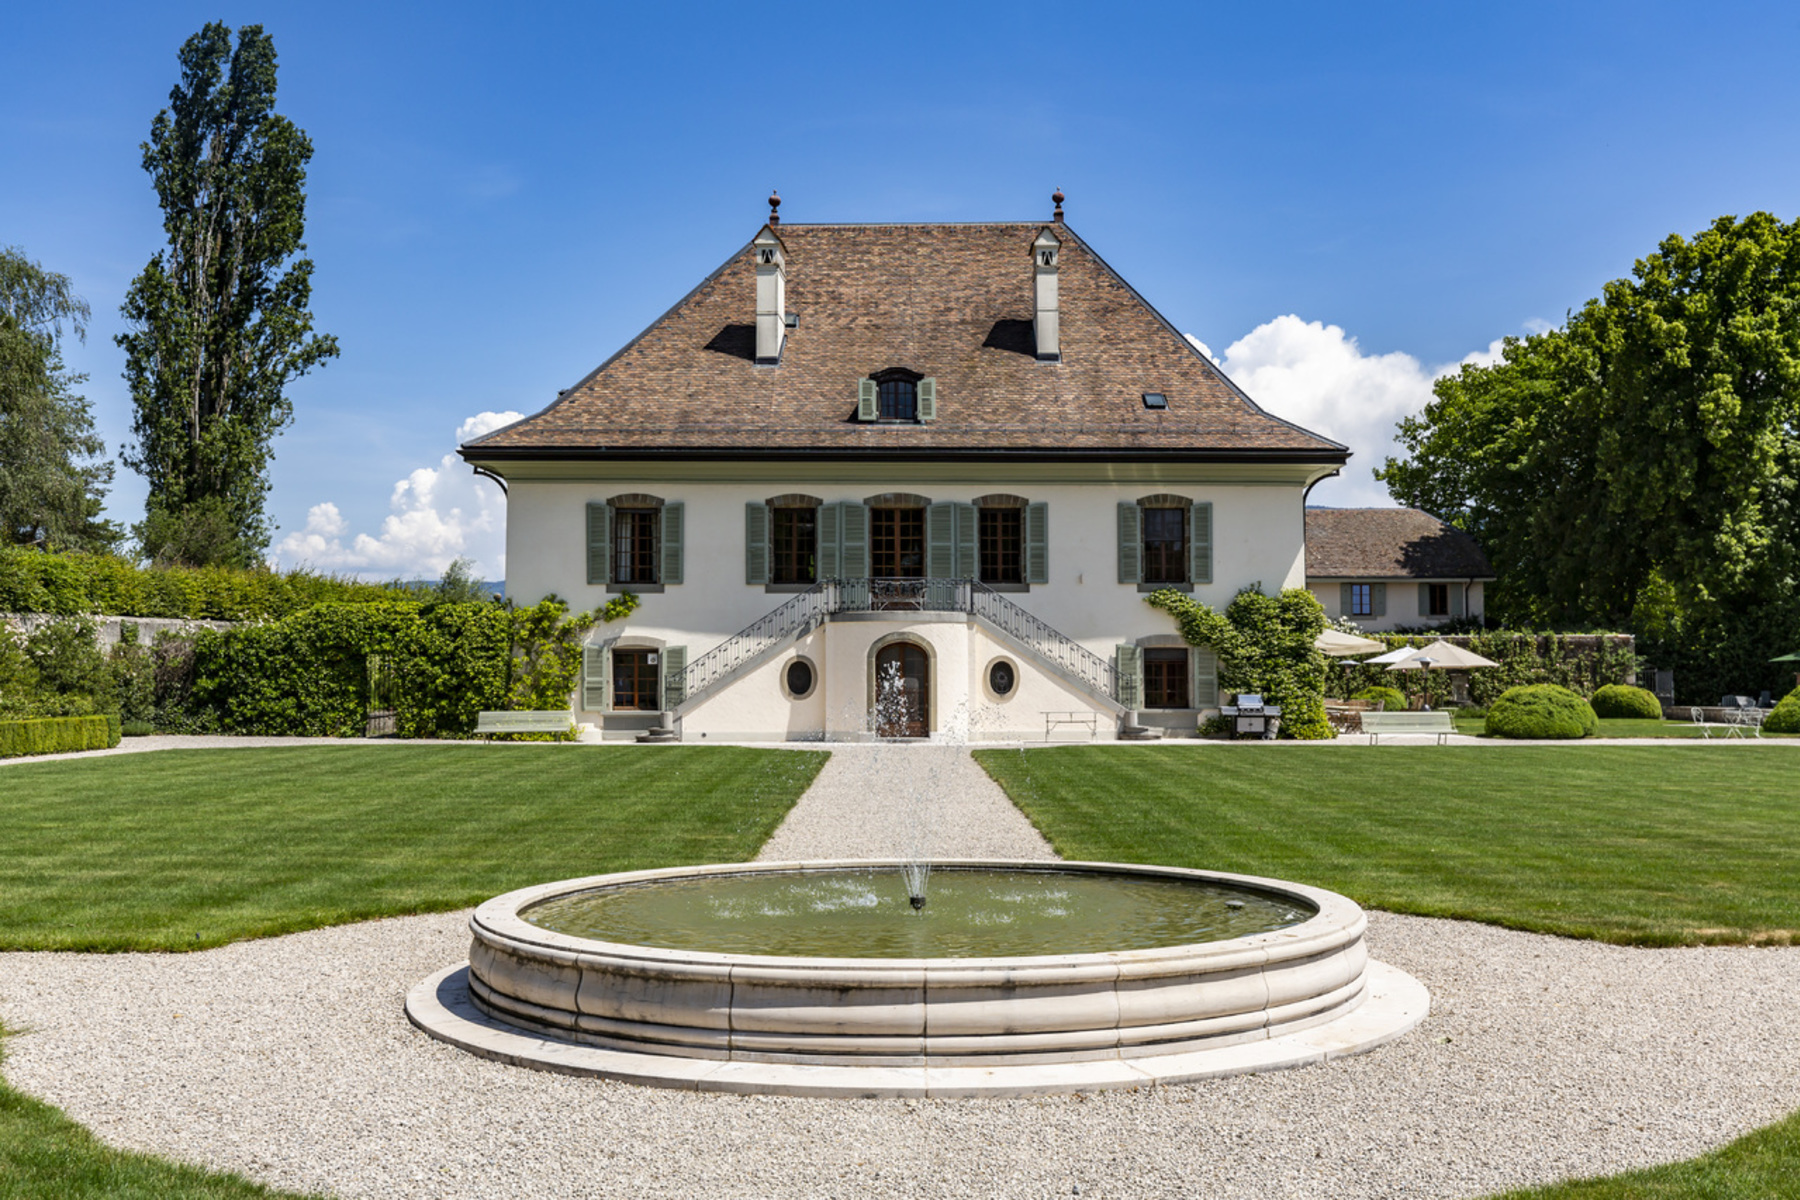 Farm and Ranch Properties 为 销售 在 Royal Estate Merlinge Castle Gy Other Geneve, 日内瓦 1252 瑞士